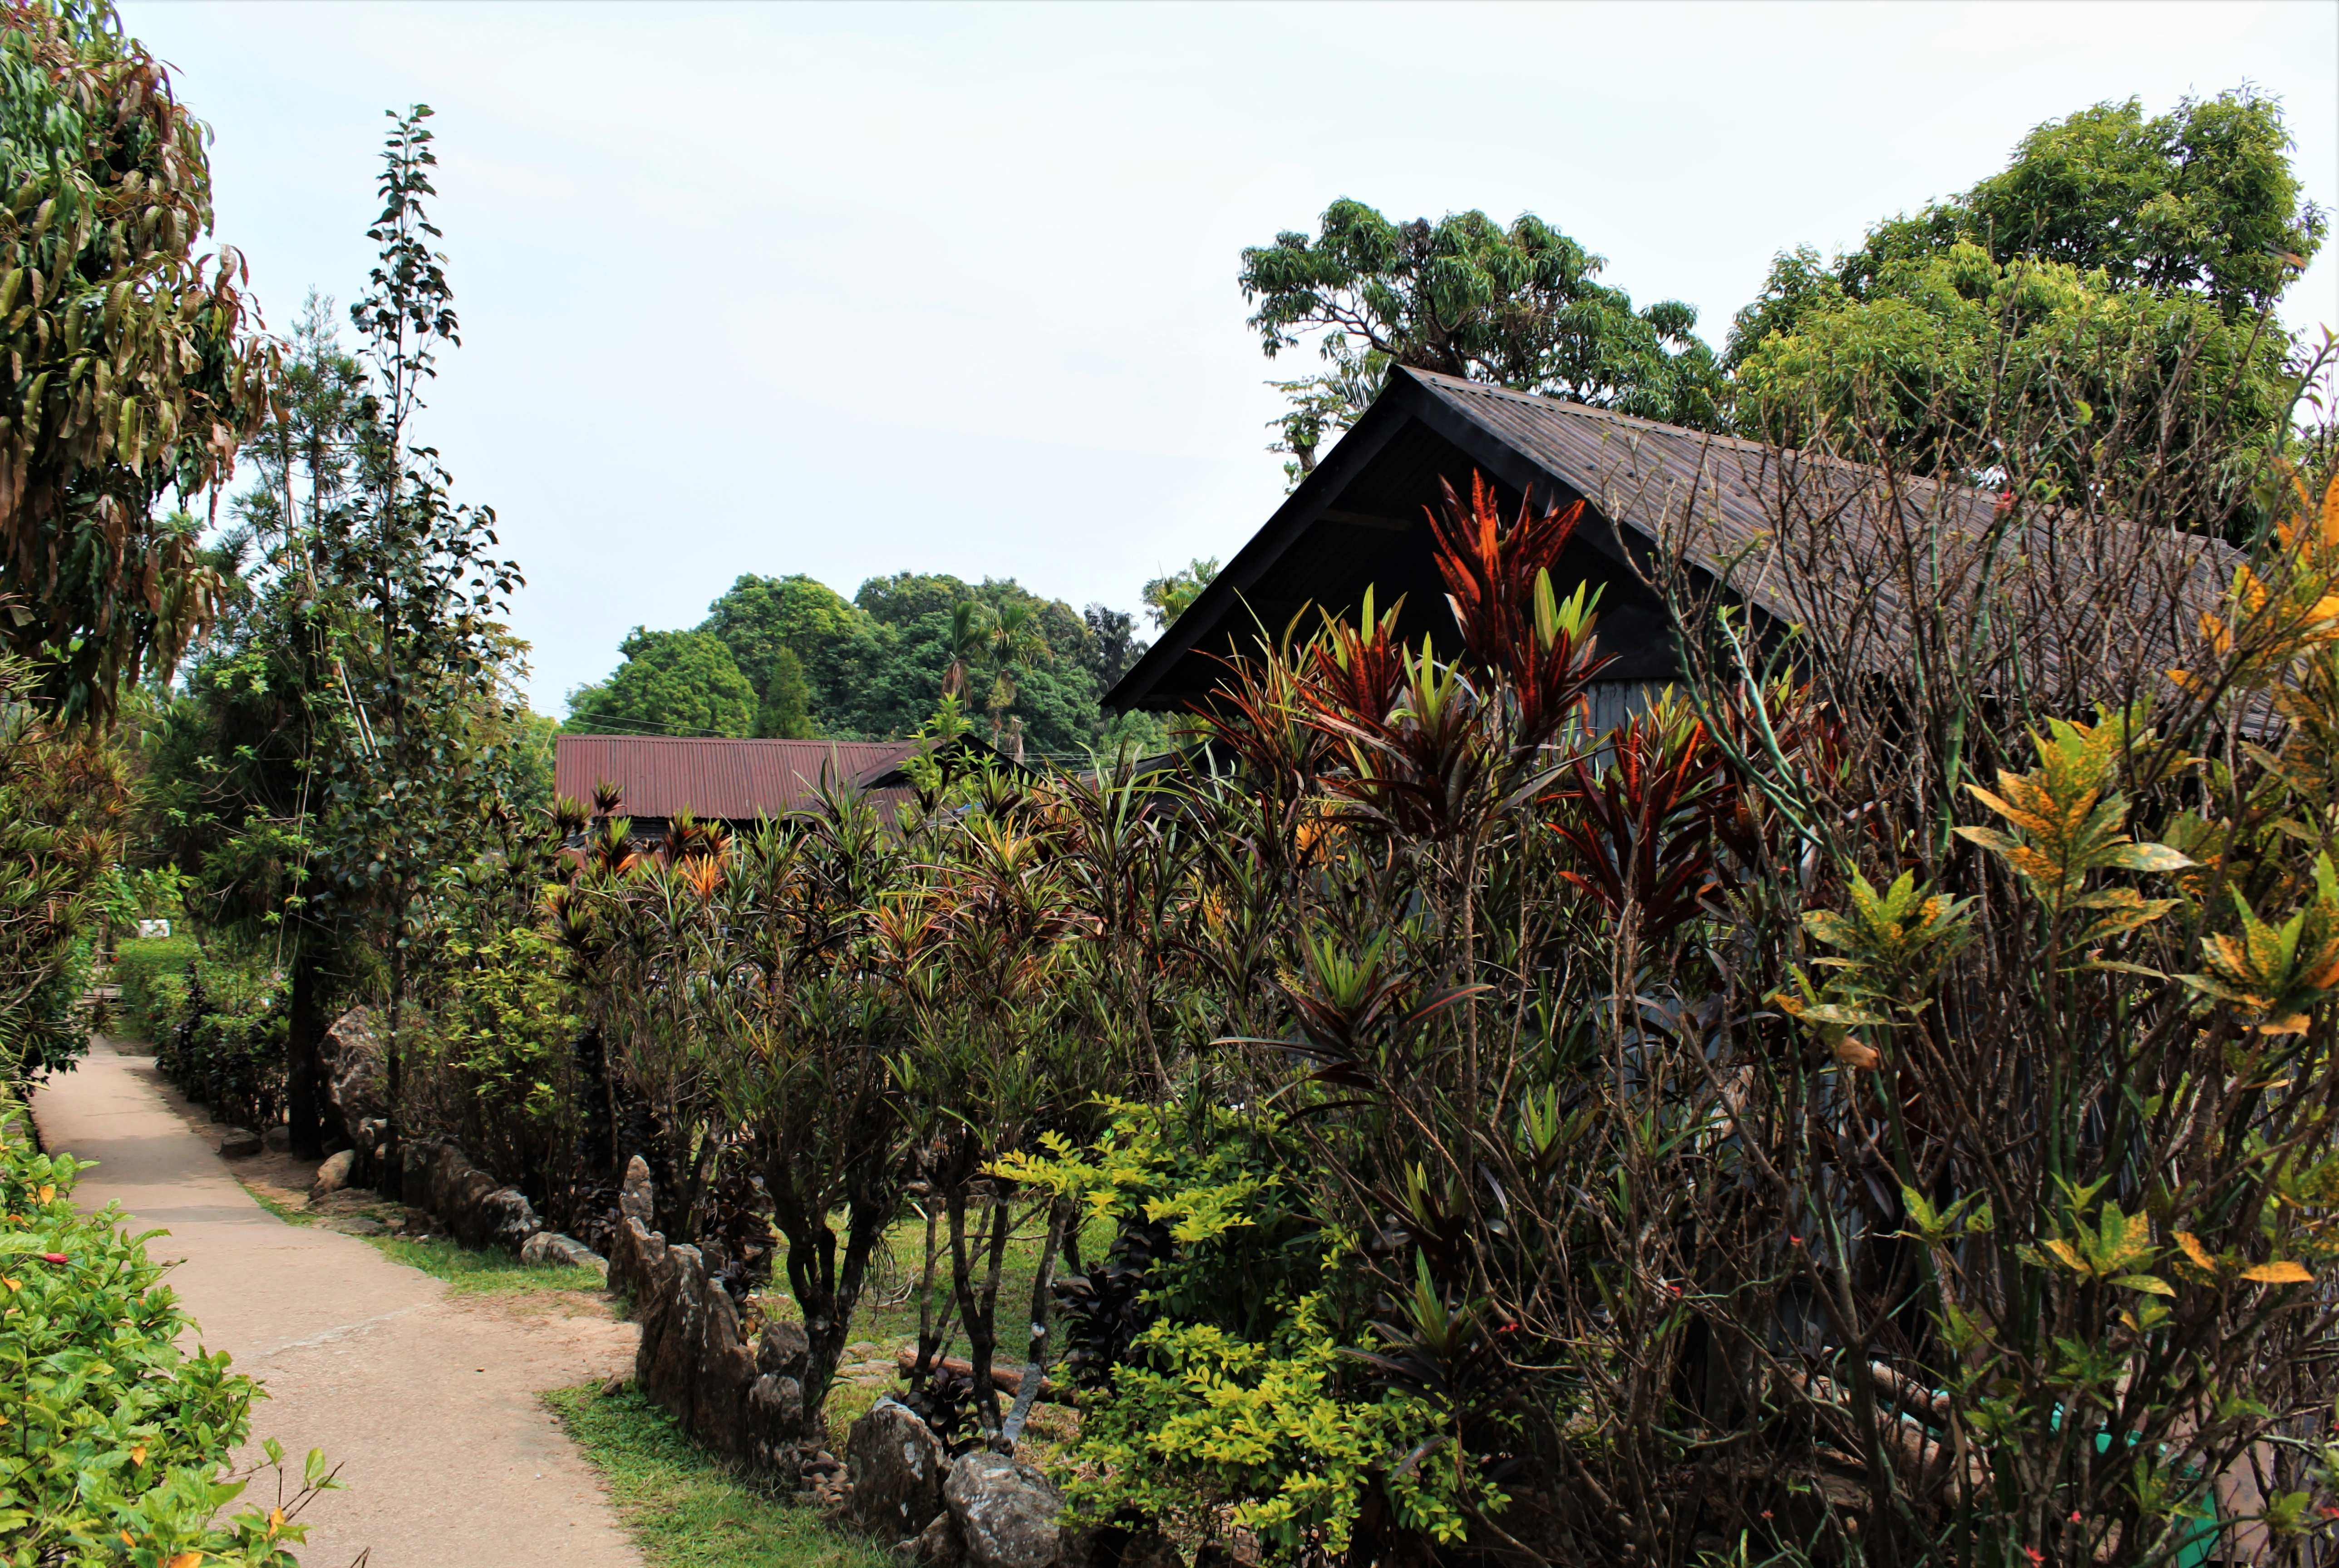 A glimpse of Mawlynnong Village